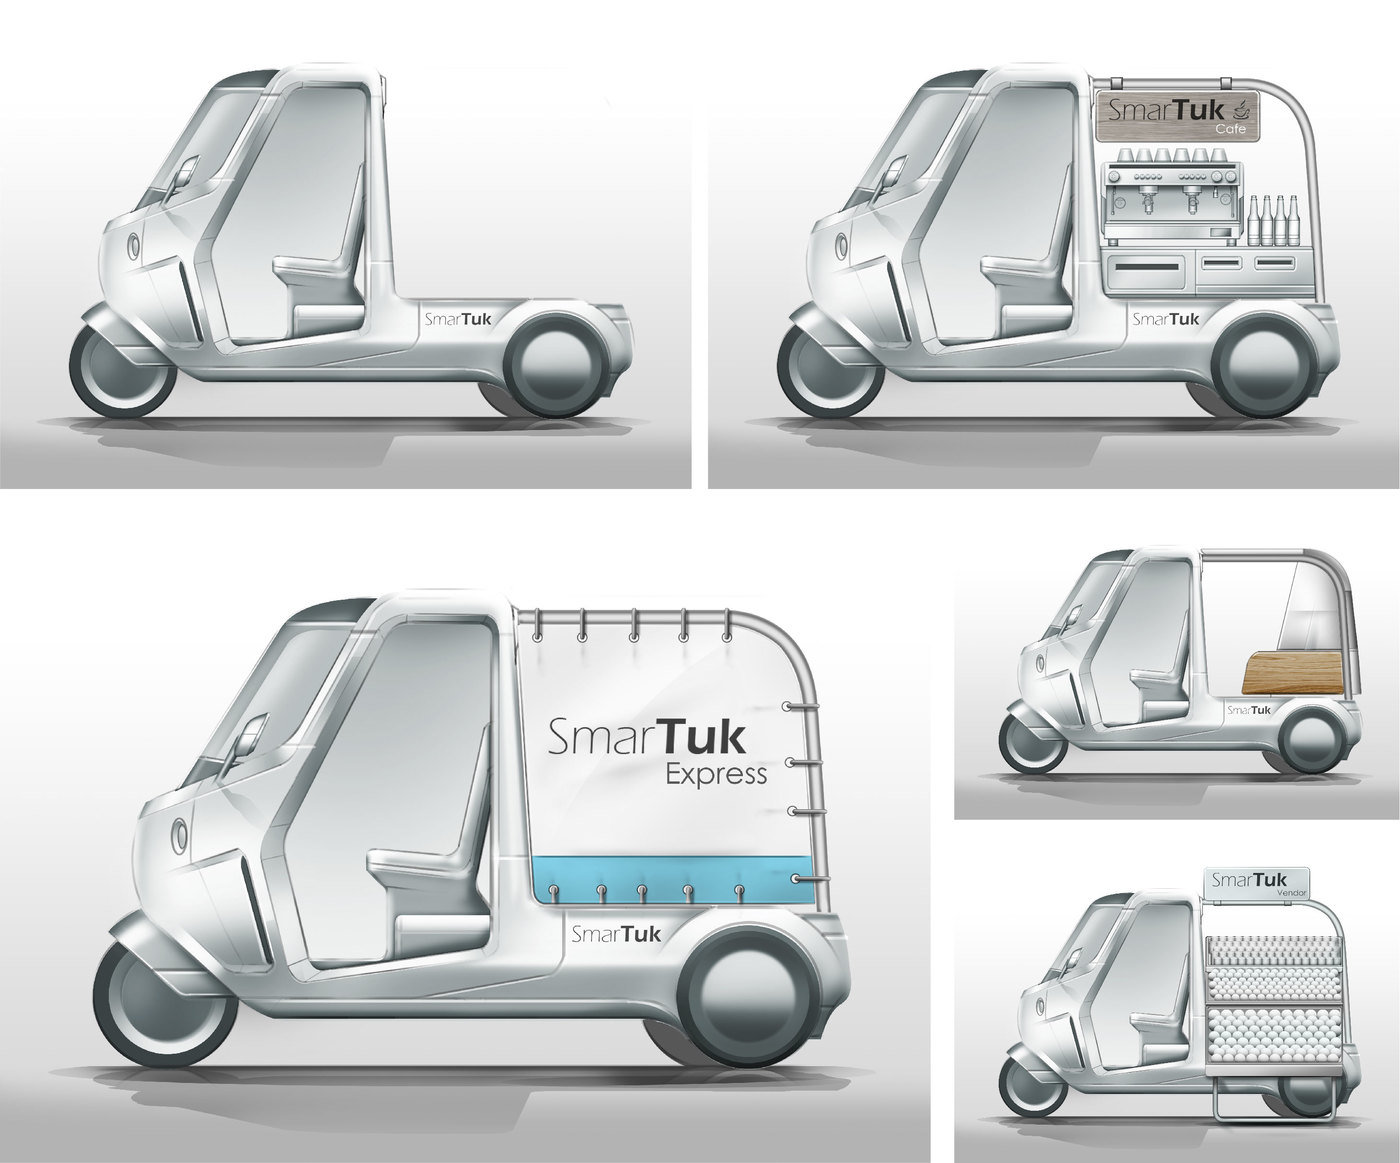 http://media.designs.vn/public/media/media/picture/23-02-2019/smartuk-electric-tuk-tuk-4.jpg